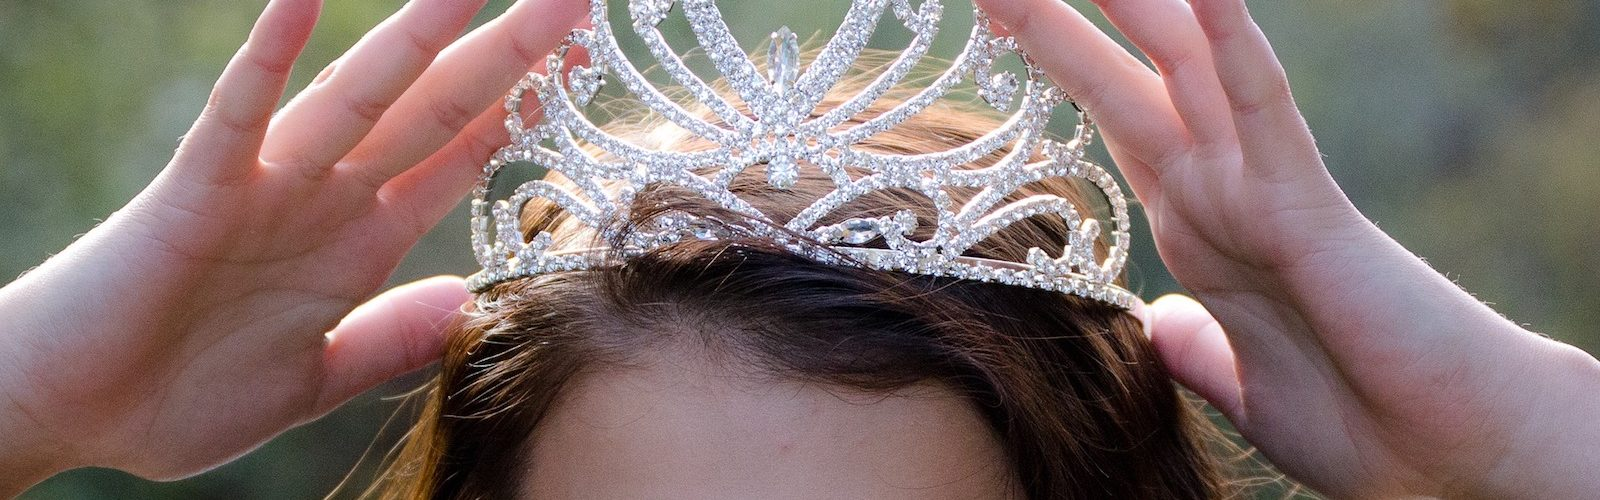 Miss USA Pageant: How I Went from Bully to Beauty Queen